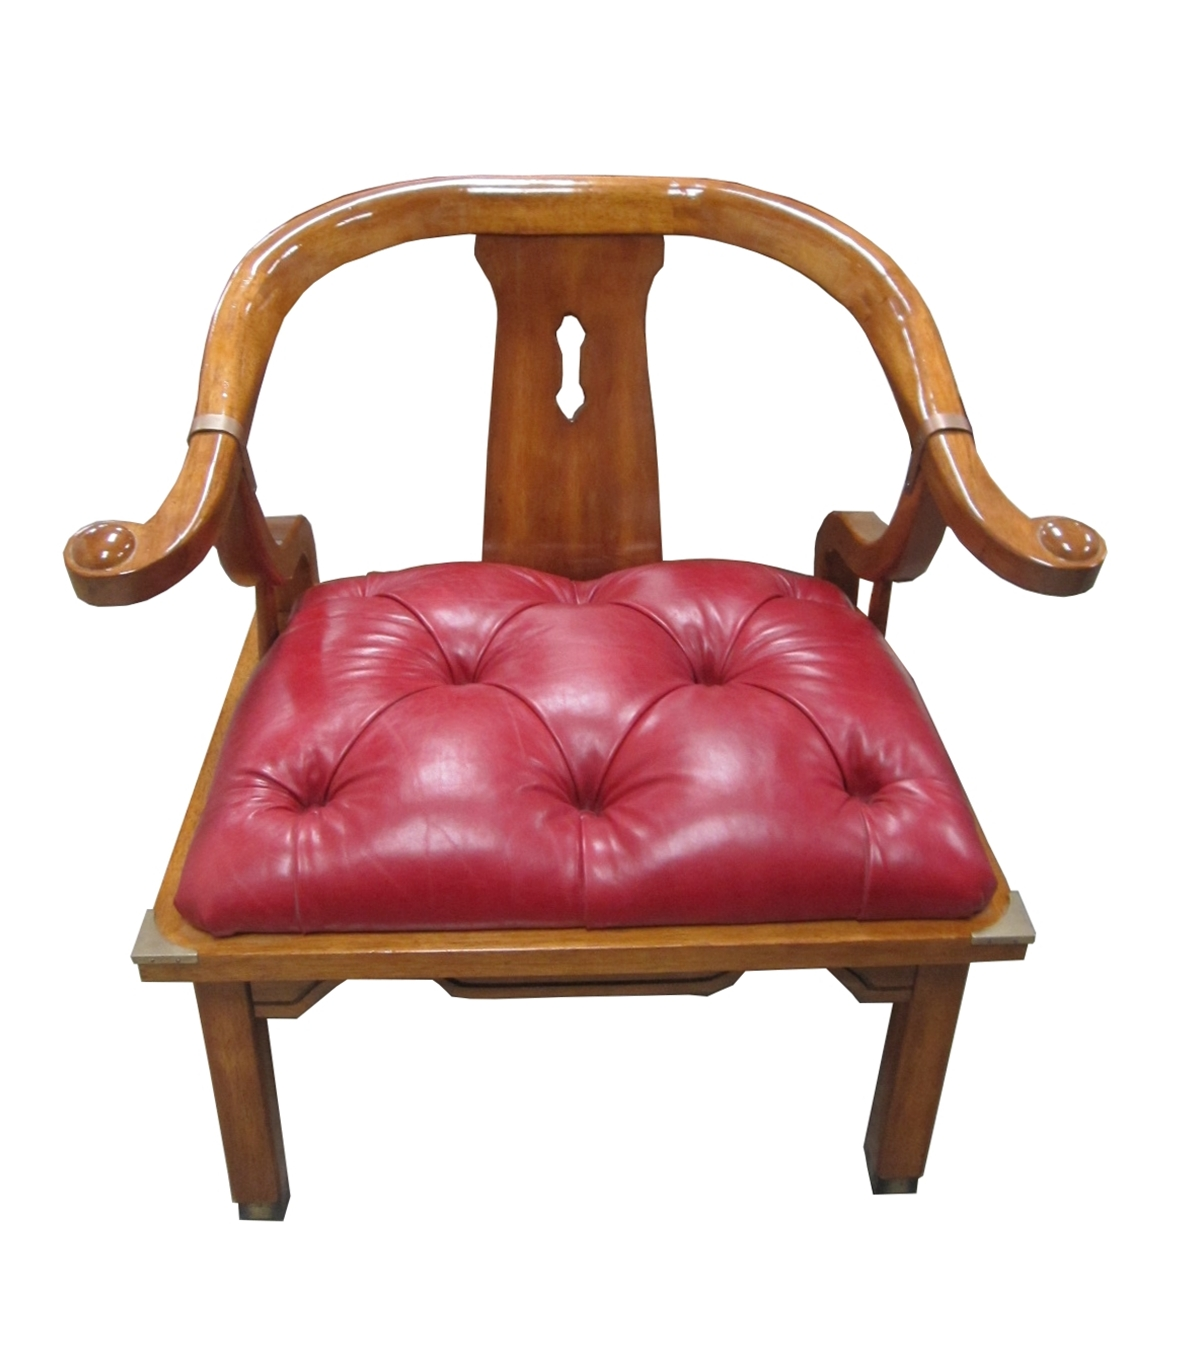 James Mont Style Asian Chair In Red Leather Tufted Seat And Brass Accents    For Sale